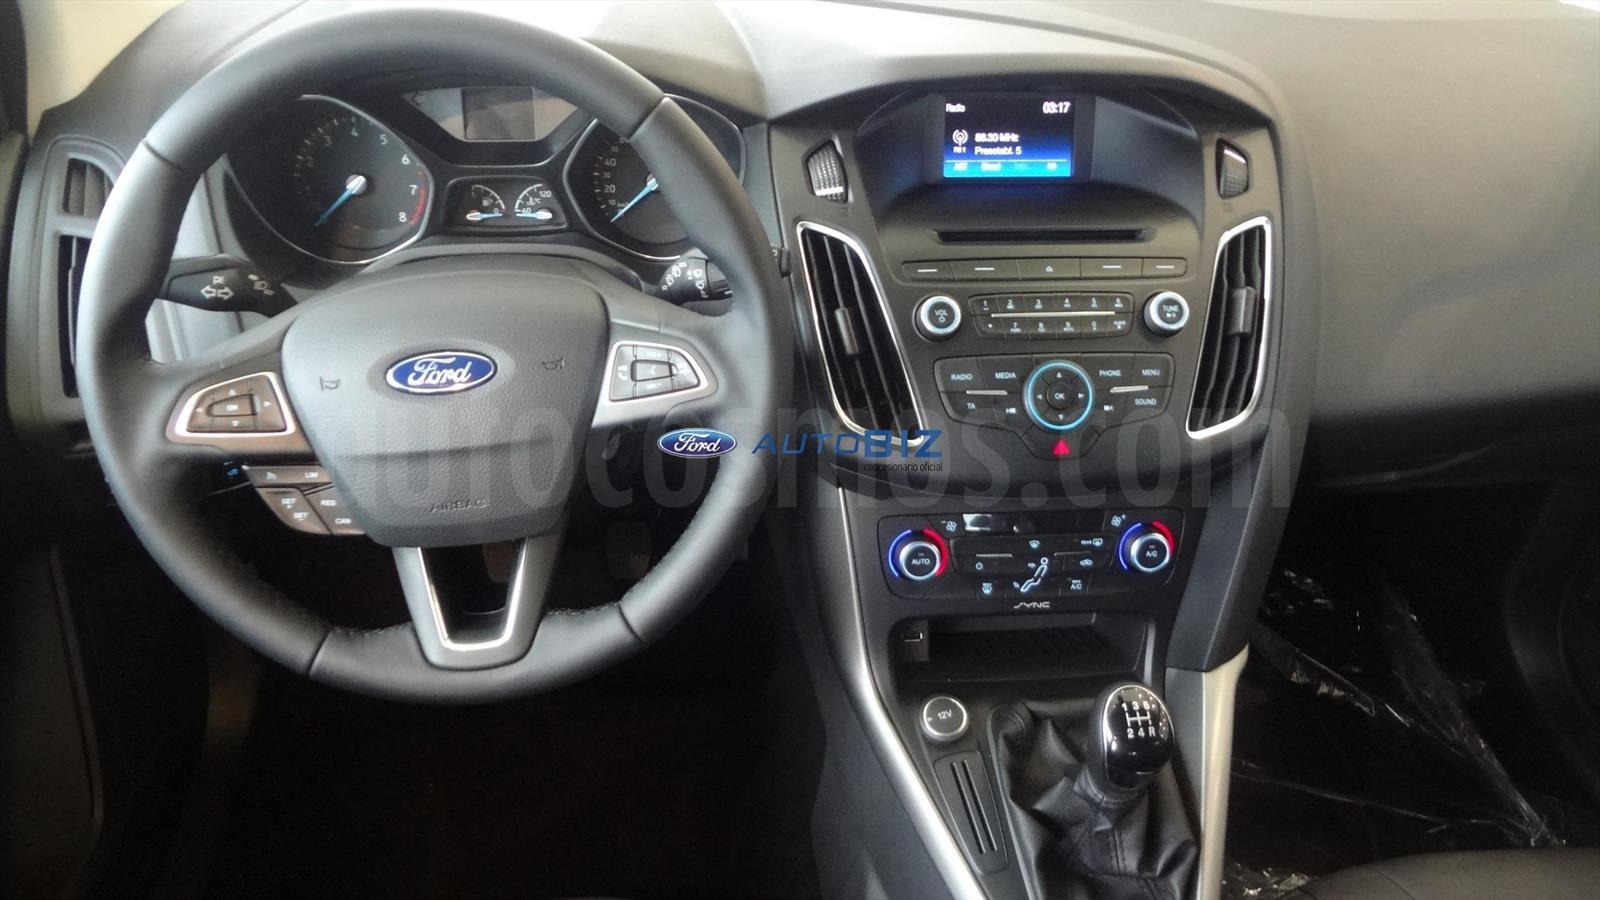 Image Result For Ford Kuga Key Not Detected